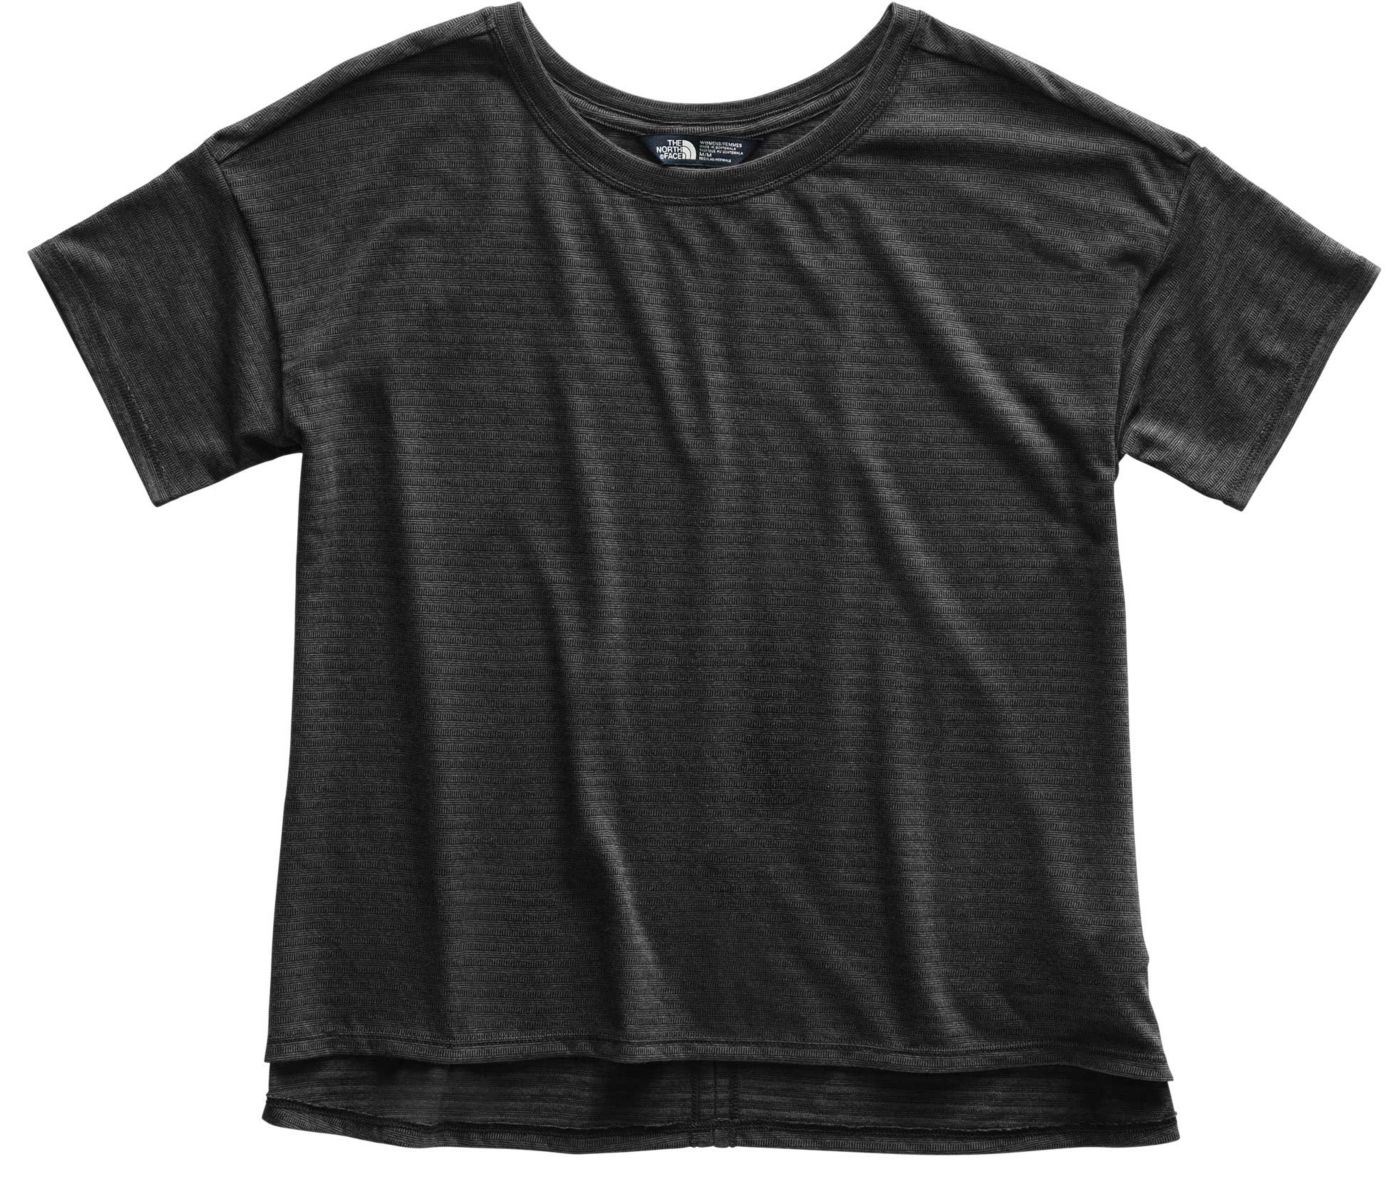 The North Face Women's Short Sleeve Emerine Top